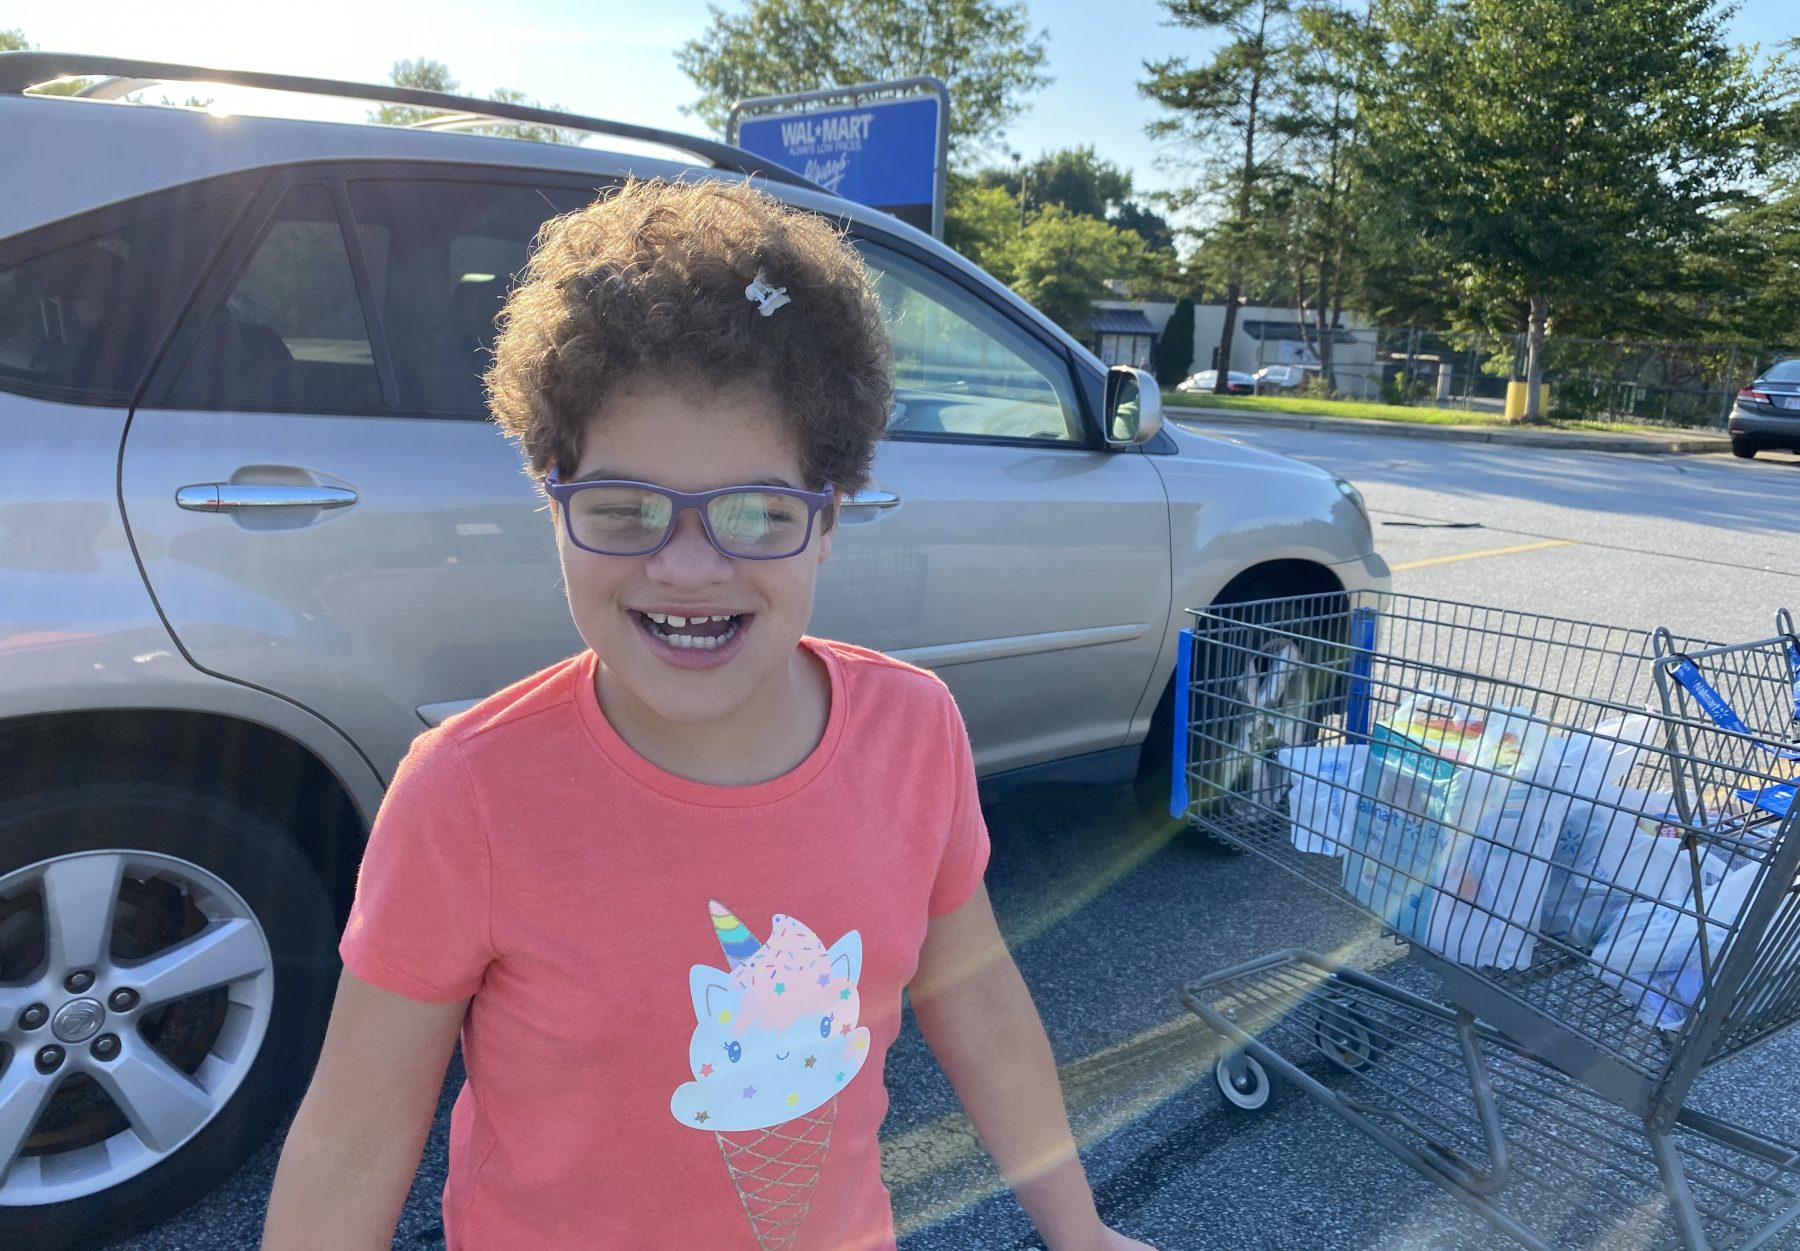 Outings with Angelman | Angelman Syndrome News | With a bright pink shirt and the sun behind her, Juliana smiles in a shopping center parking lot on an outing with her mom.